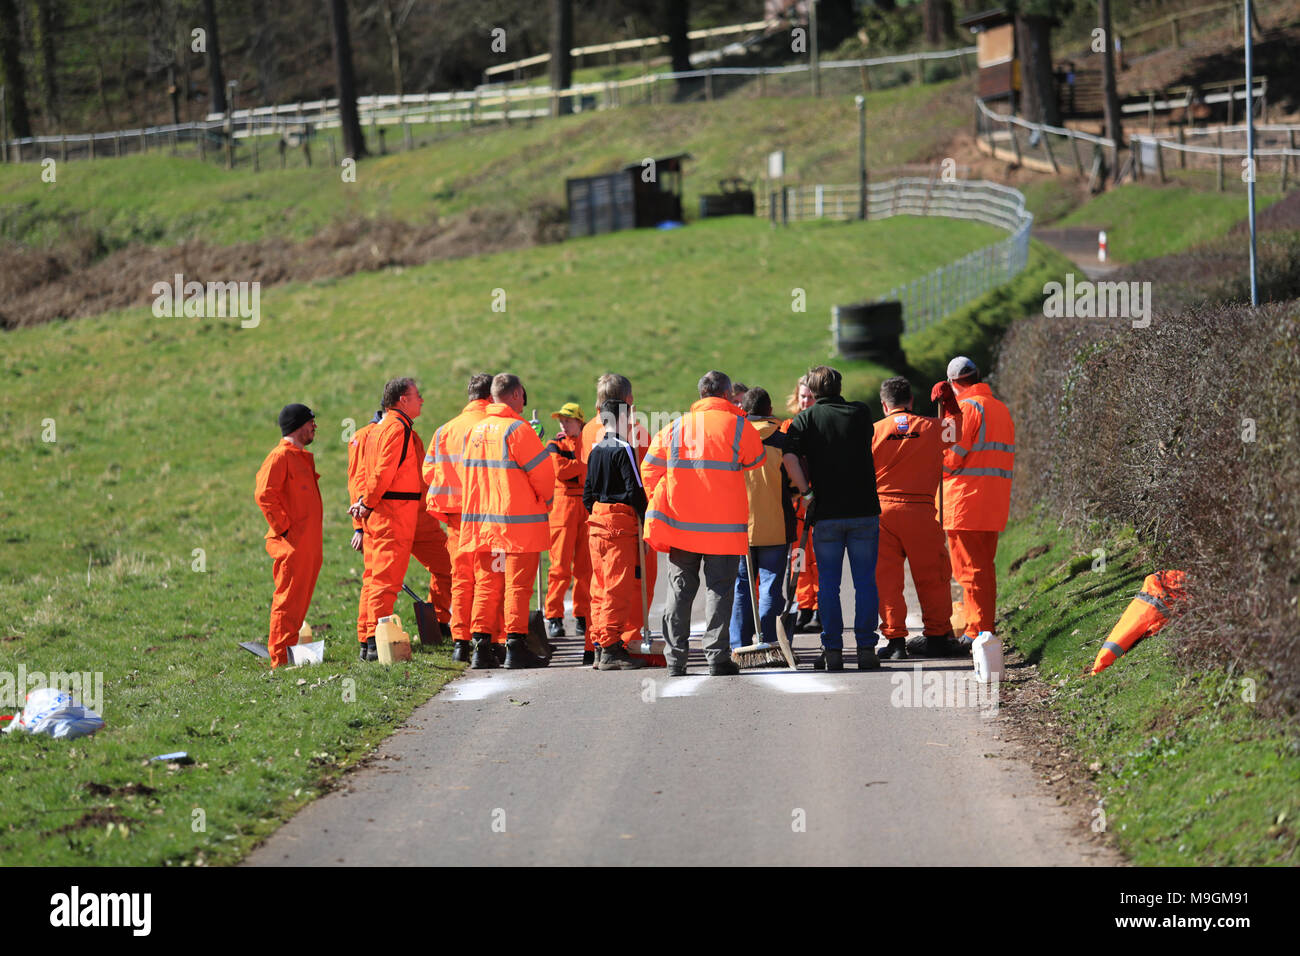 Motor sport marshals being trained in dealing with fluid spills. - Stock Image